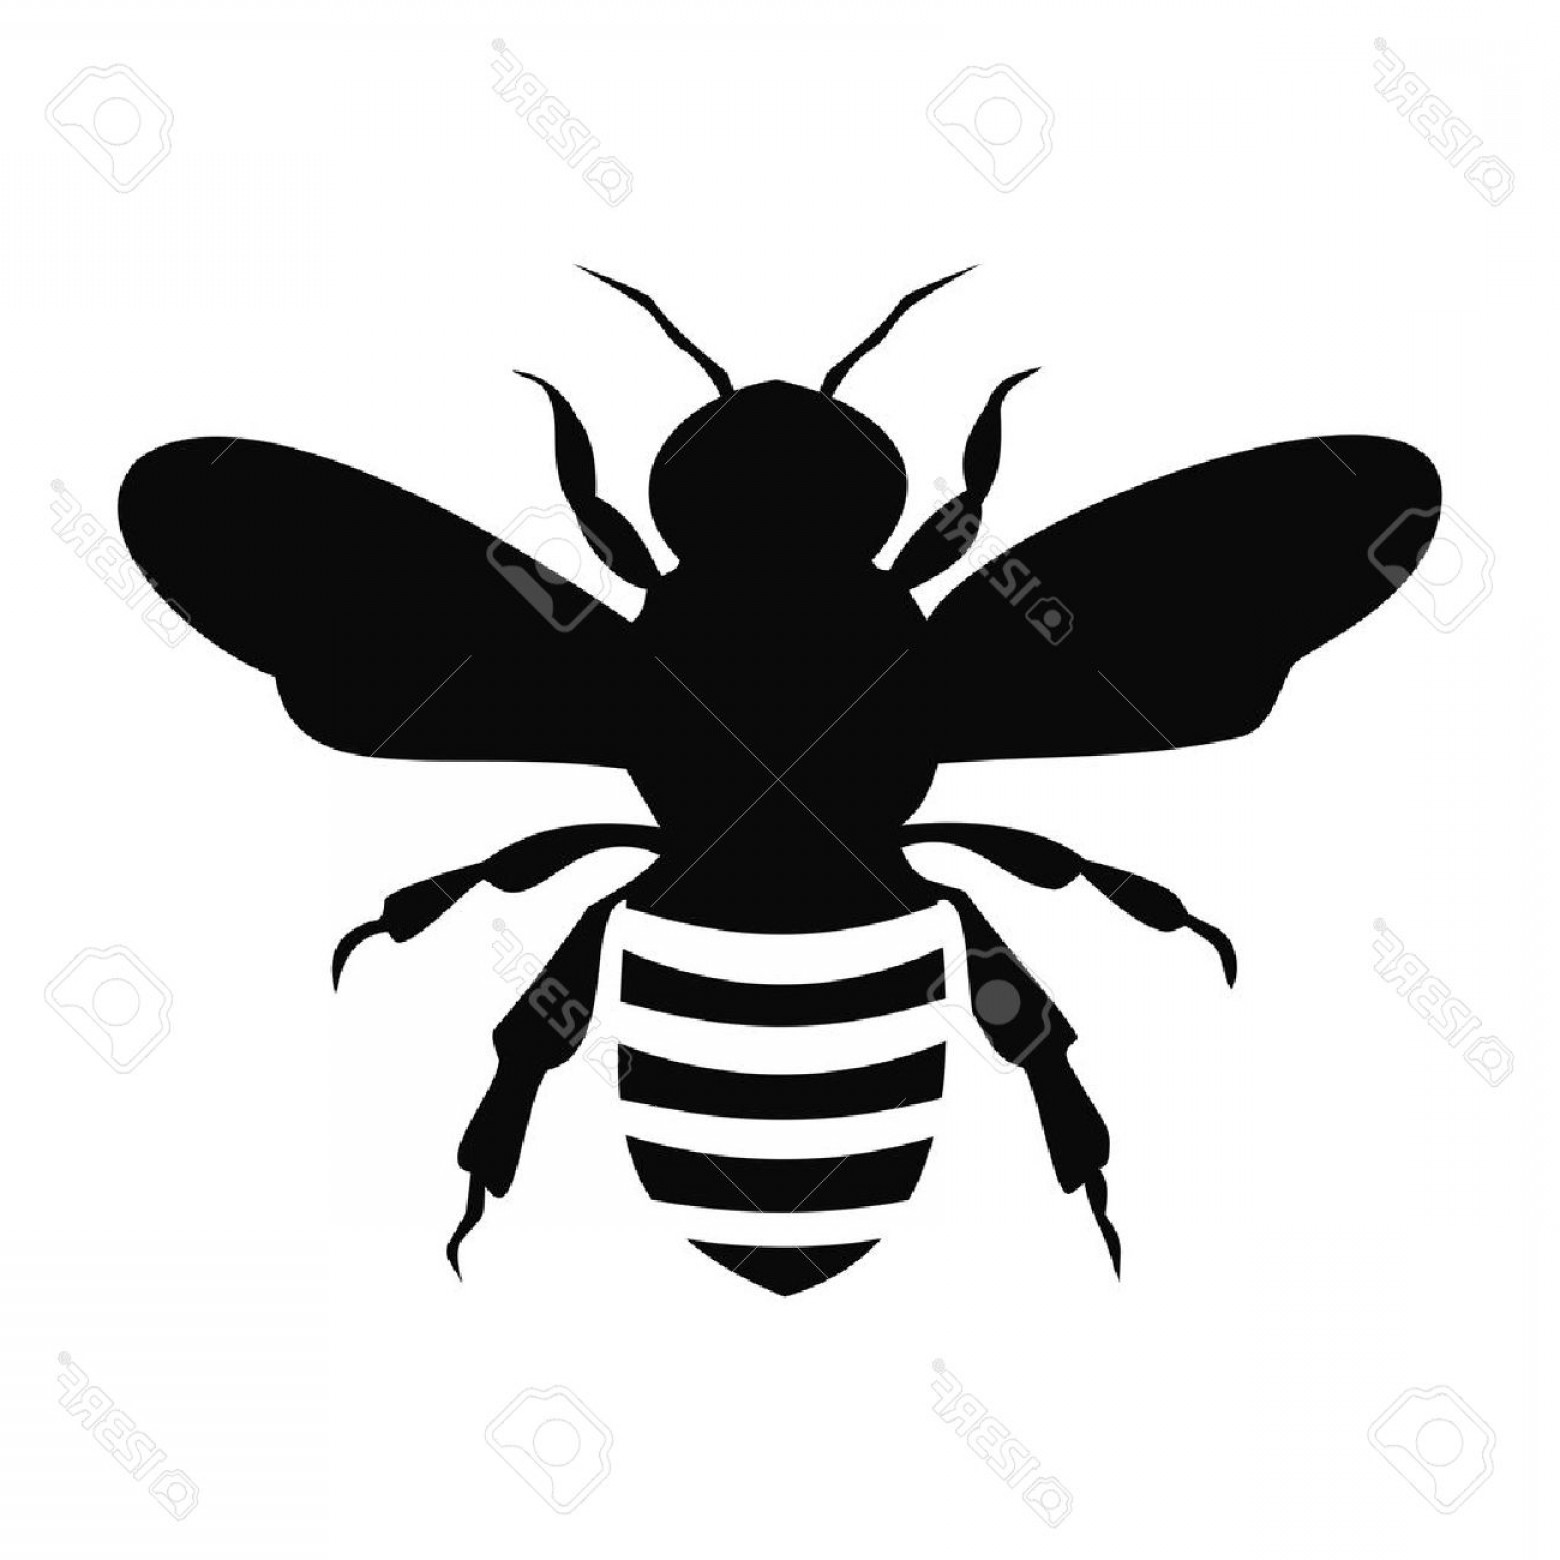 Bee Outline Vector: Photostock Vector Black Bee Silhouette Isolated On White Background Illustration